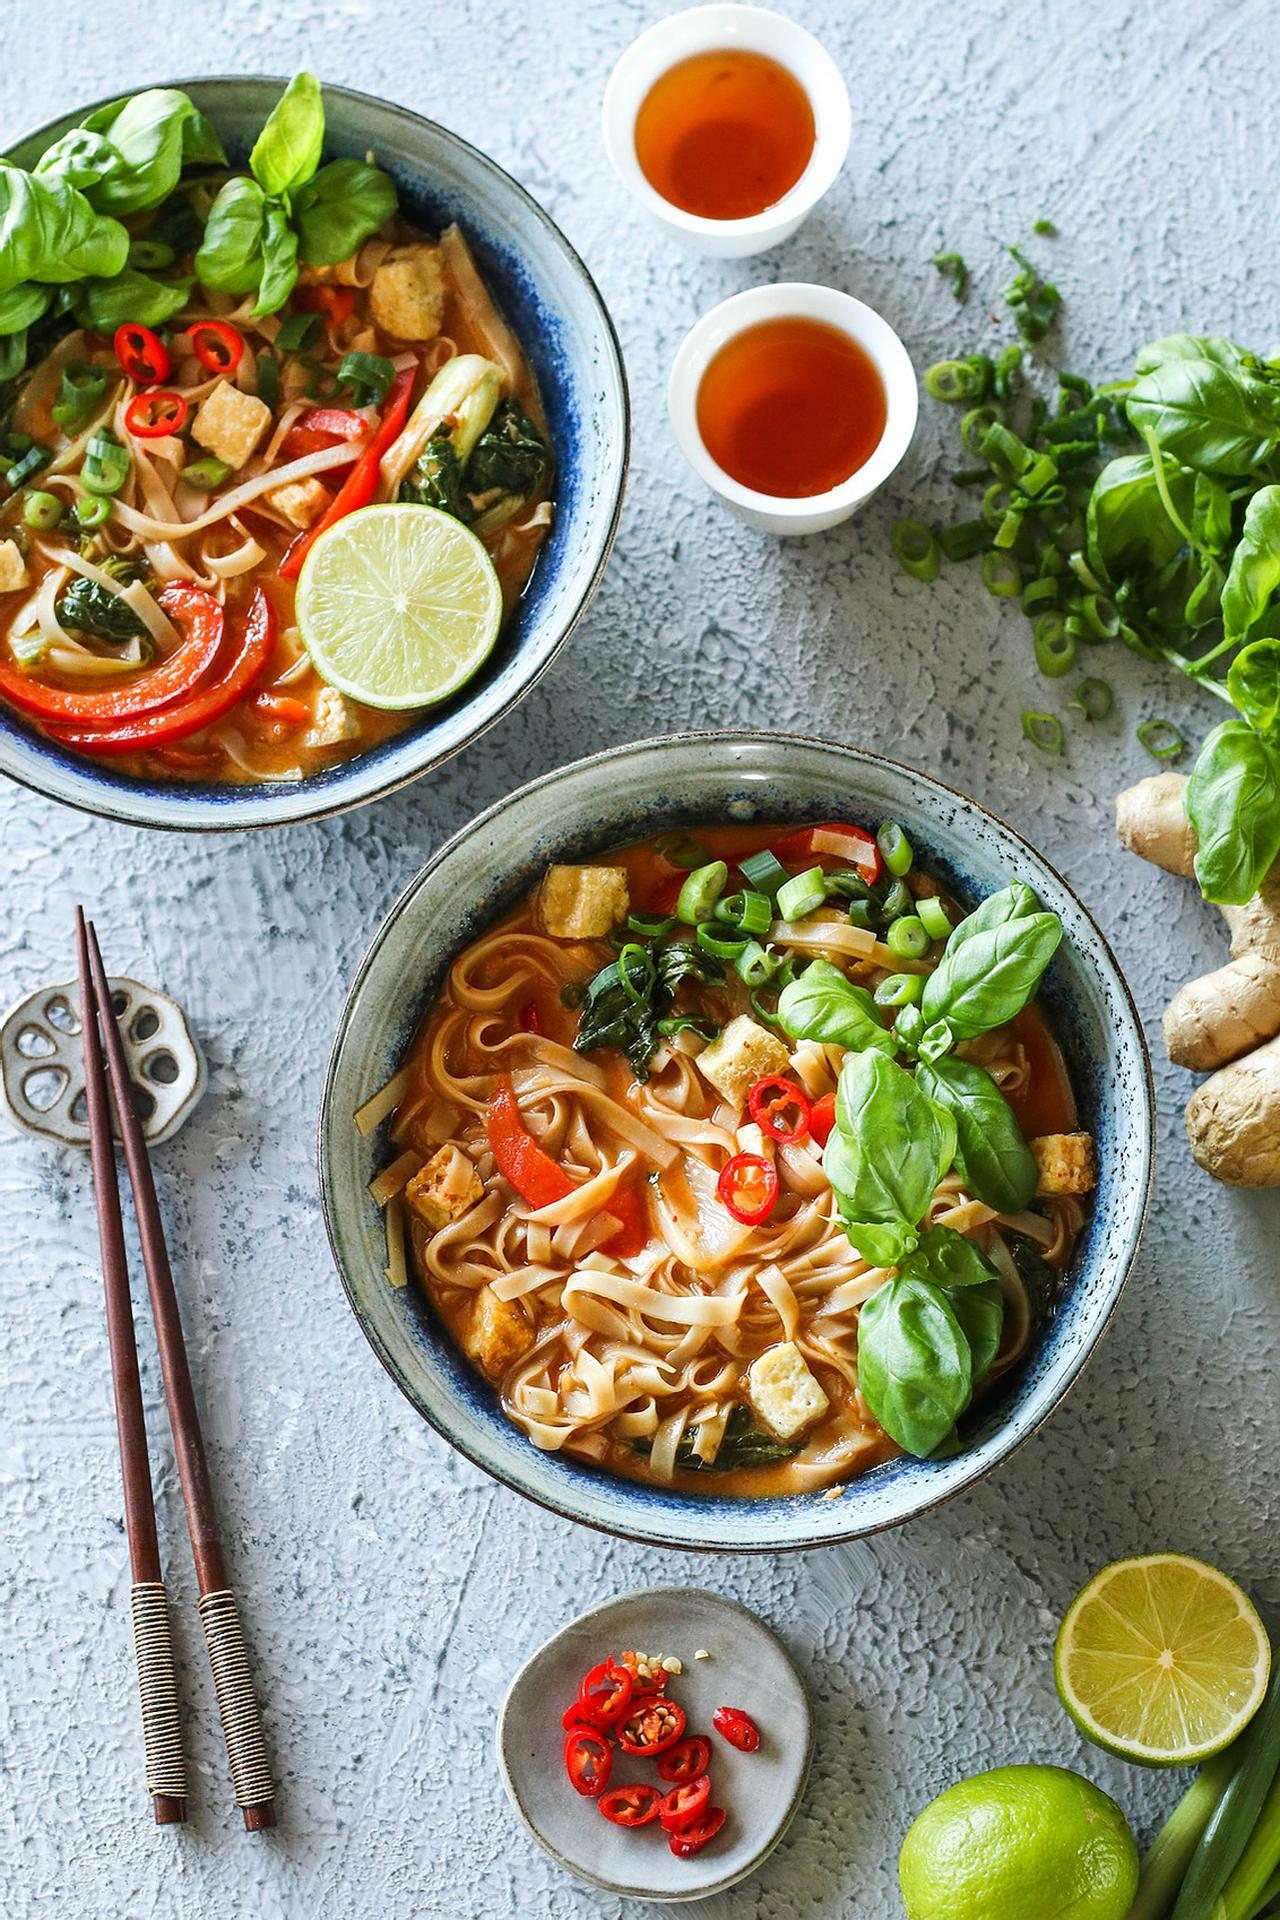 Main image of Thai Red Curry Noodle Soup with Crispy Tofu